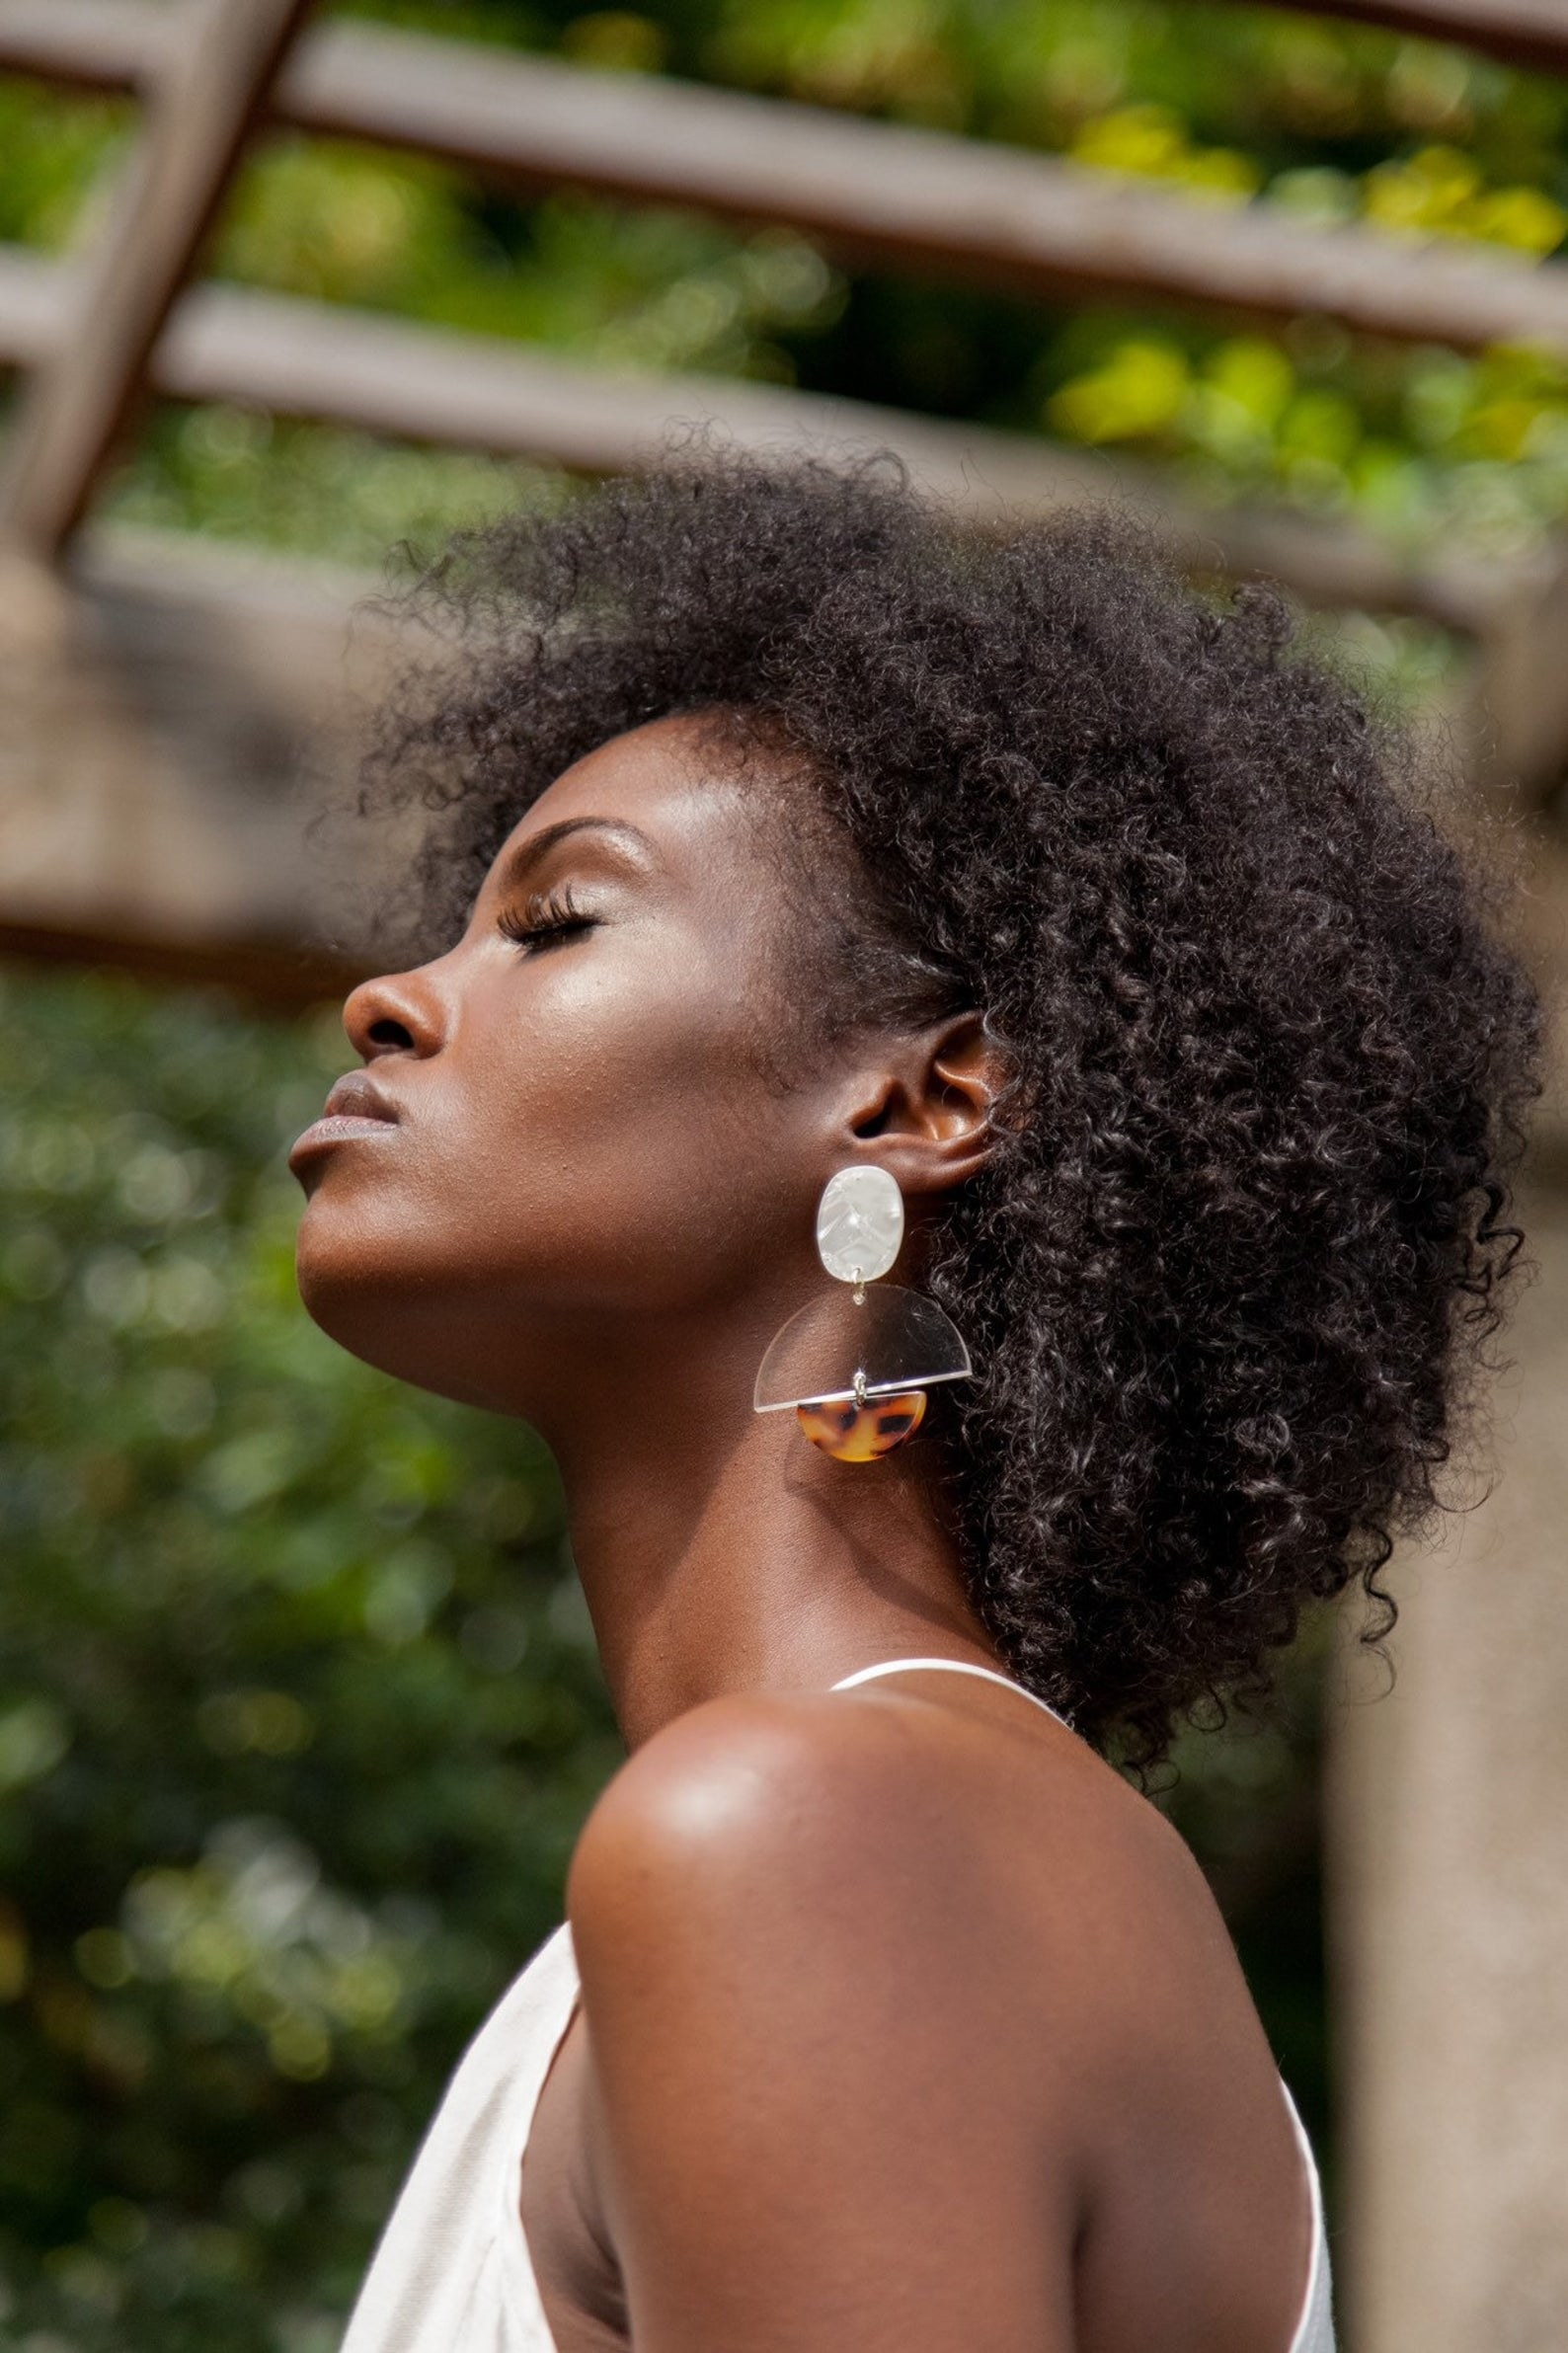 model wearing dangling earrings with one circular ivory portion, a clear half circle hanging underneath, and a smaller tortoiseshell half-circle underneath that